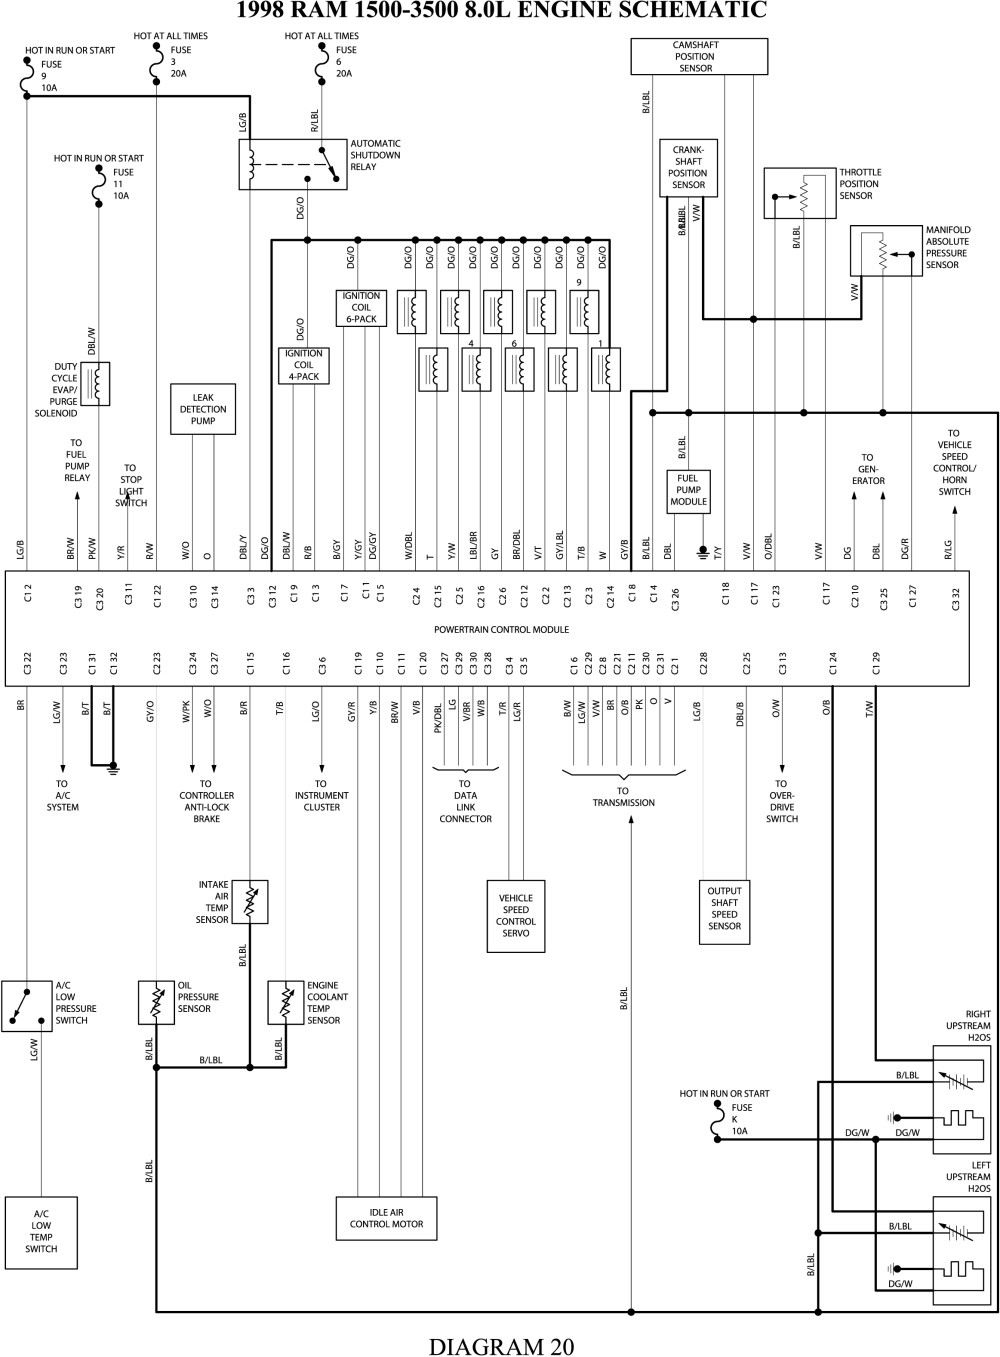 1997 dodge ram 1500 alternator wiring diagram Download-1997 dodge ram 1500 alternator wiring diagram sample electrical rh metroroomph Dodge Ram 1500 Light 10-s